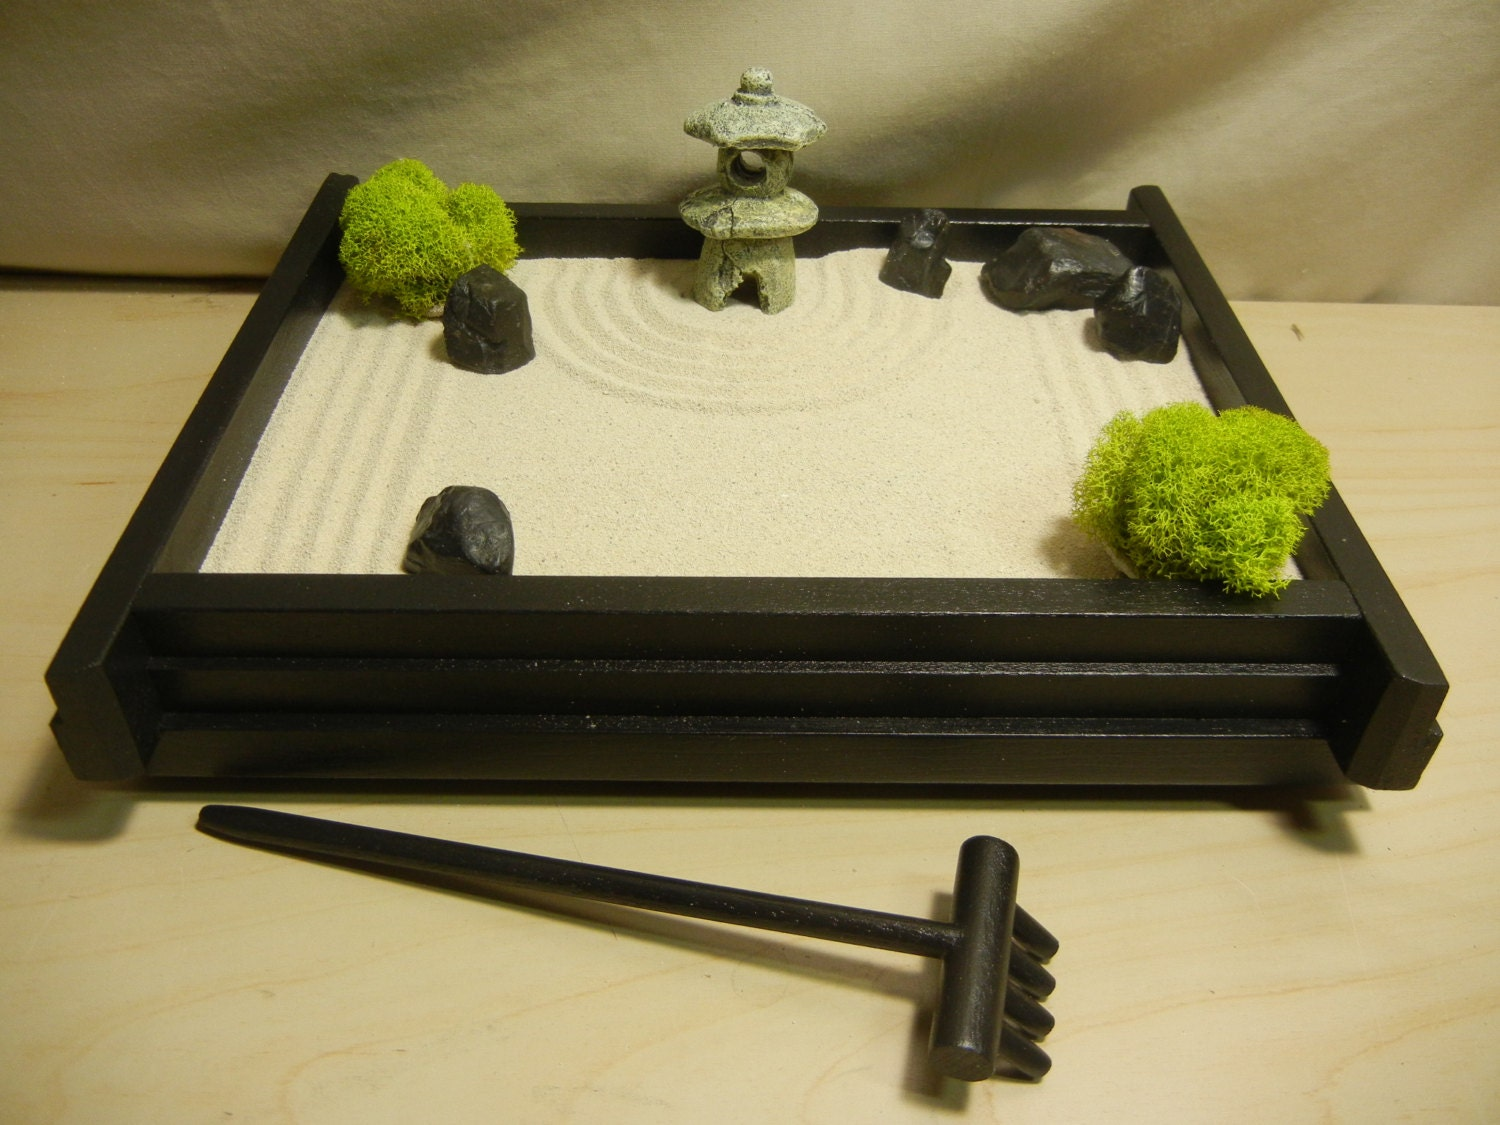 s03p small desk or table top zen garden with pagoda lantern